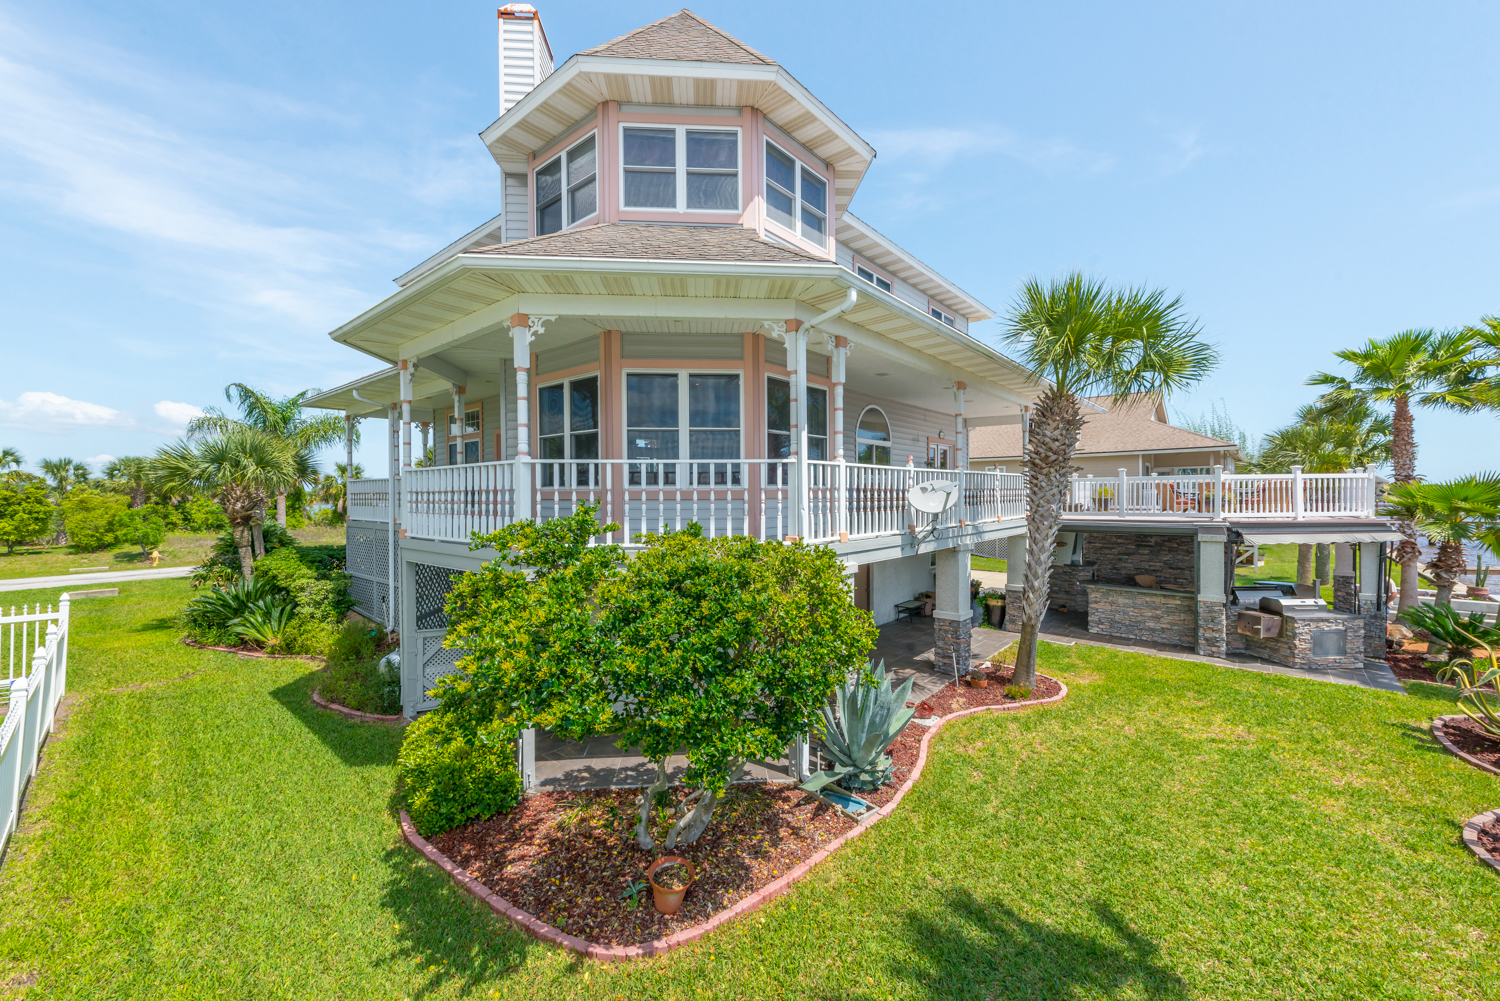 level_exposure_real_estate_photography_jacksonville_florida-11